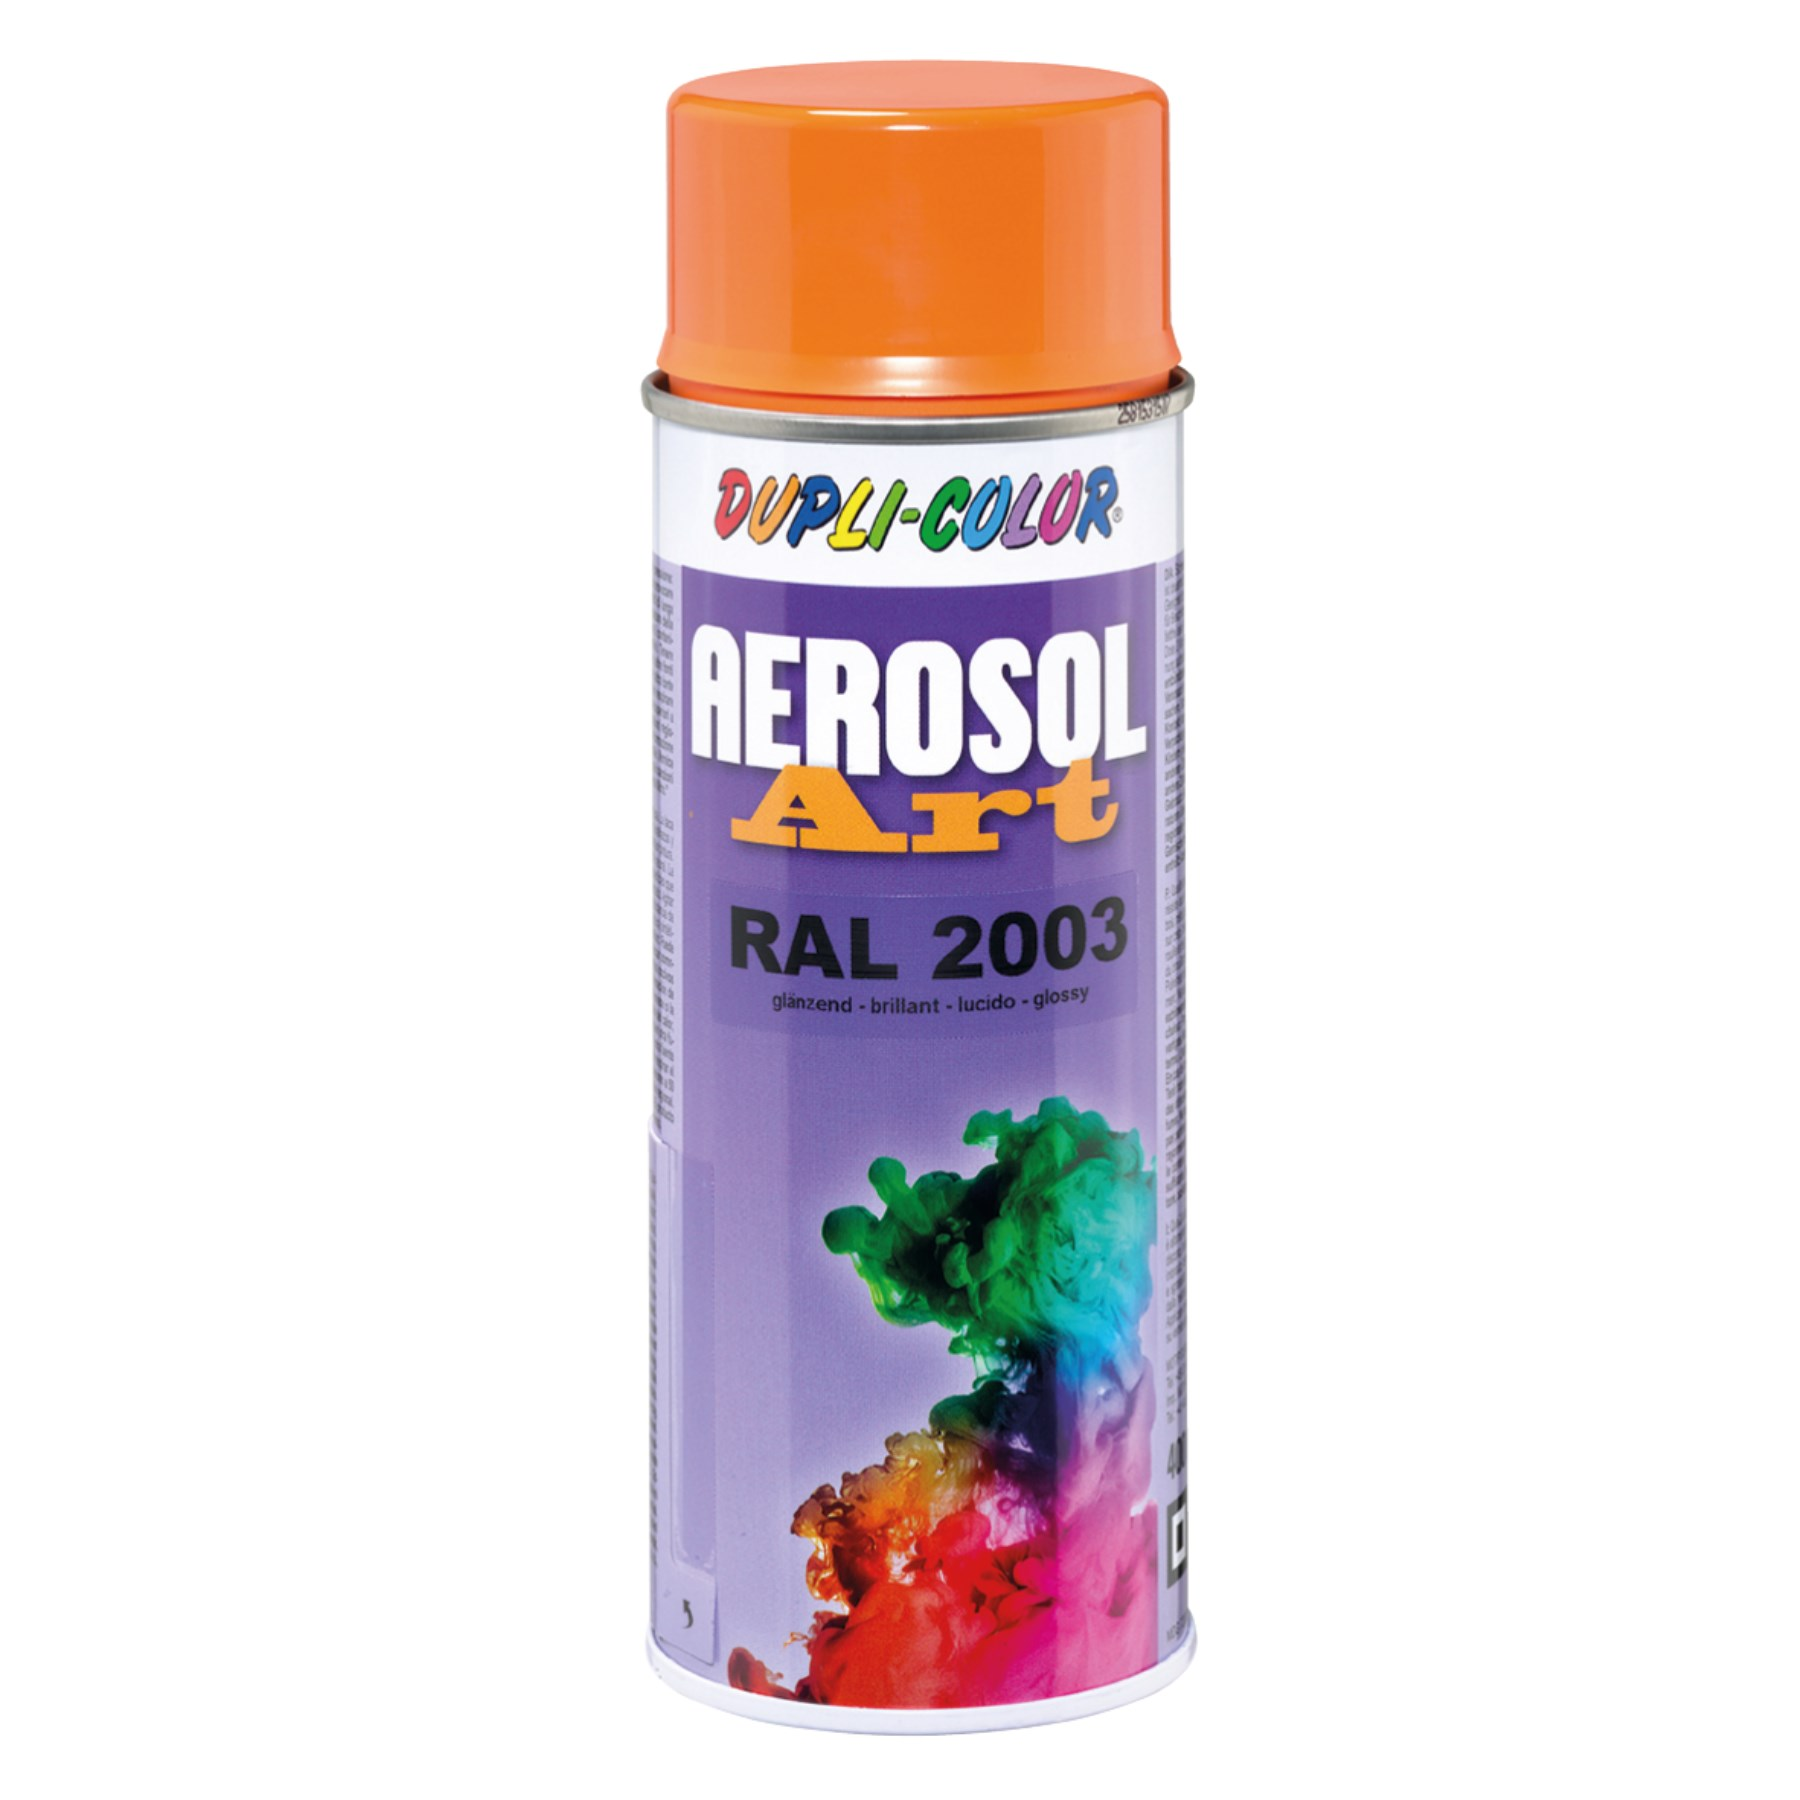 1172249 - Lackspray RAL 9001 glz.400ml Aerosol Art